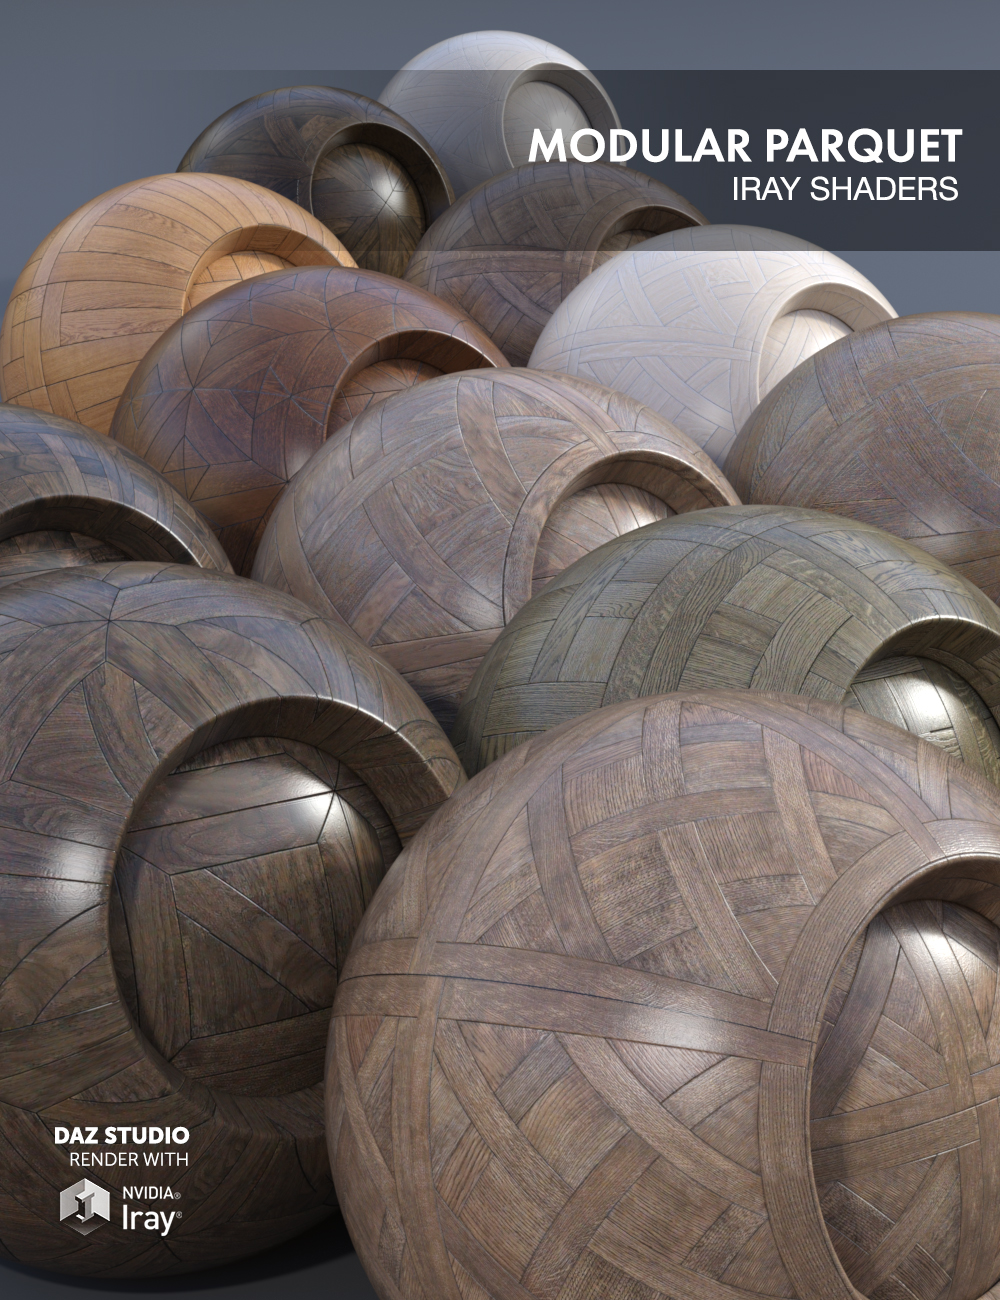 Modular Parquet - Iray Shaders by: Dimidrol, 3D Models by Daz 3D